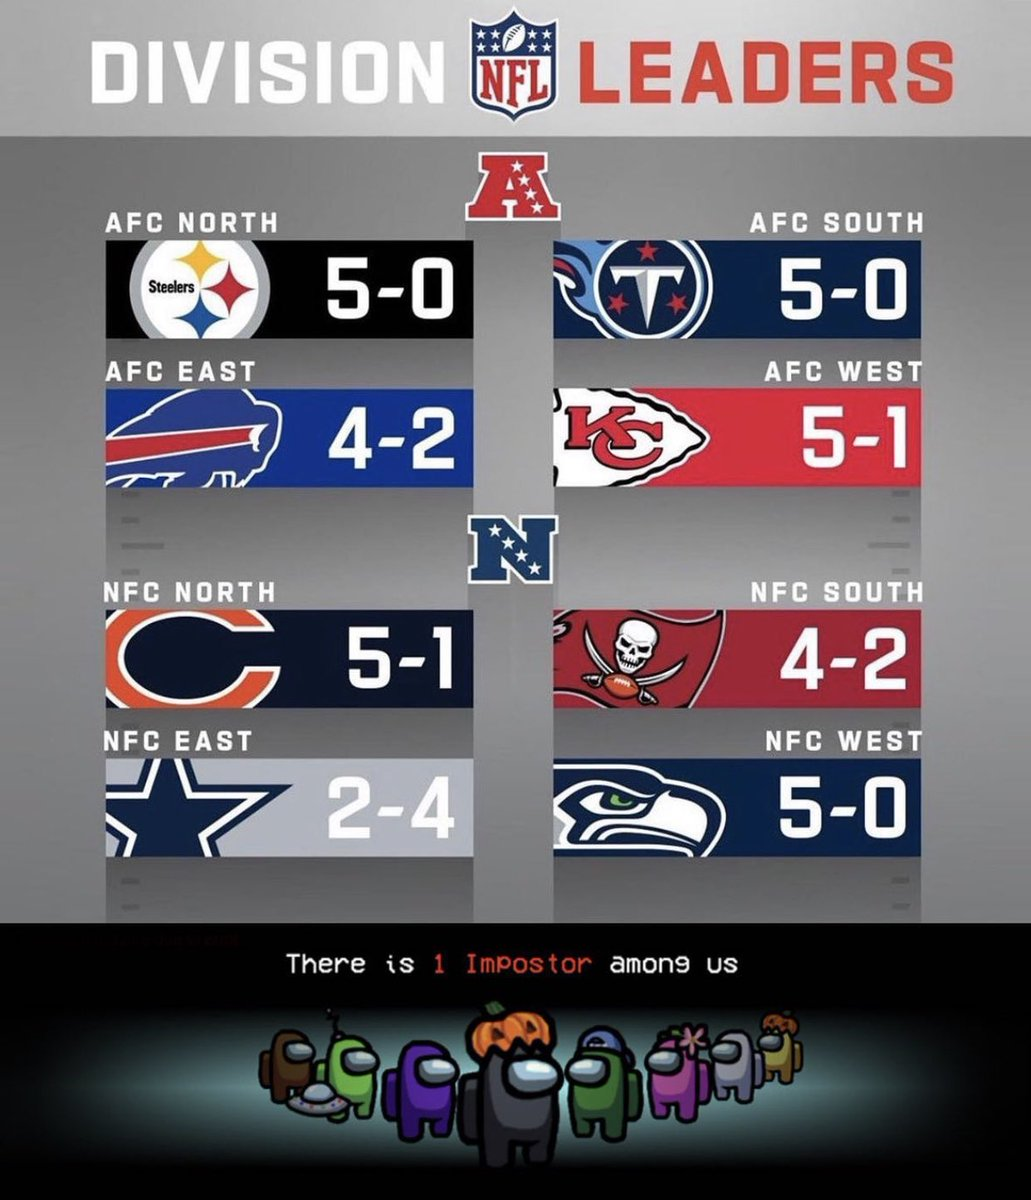 NFL division leaders..